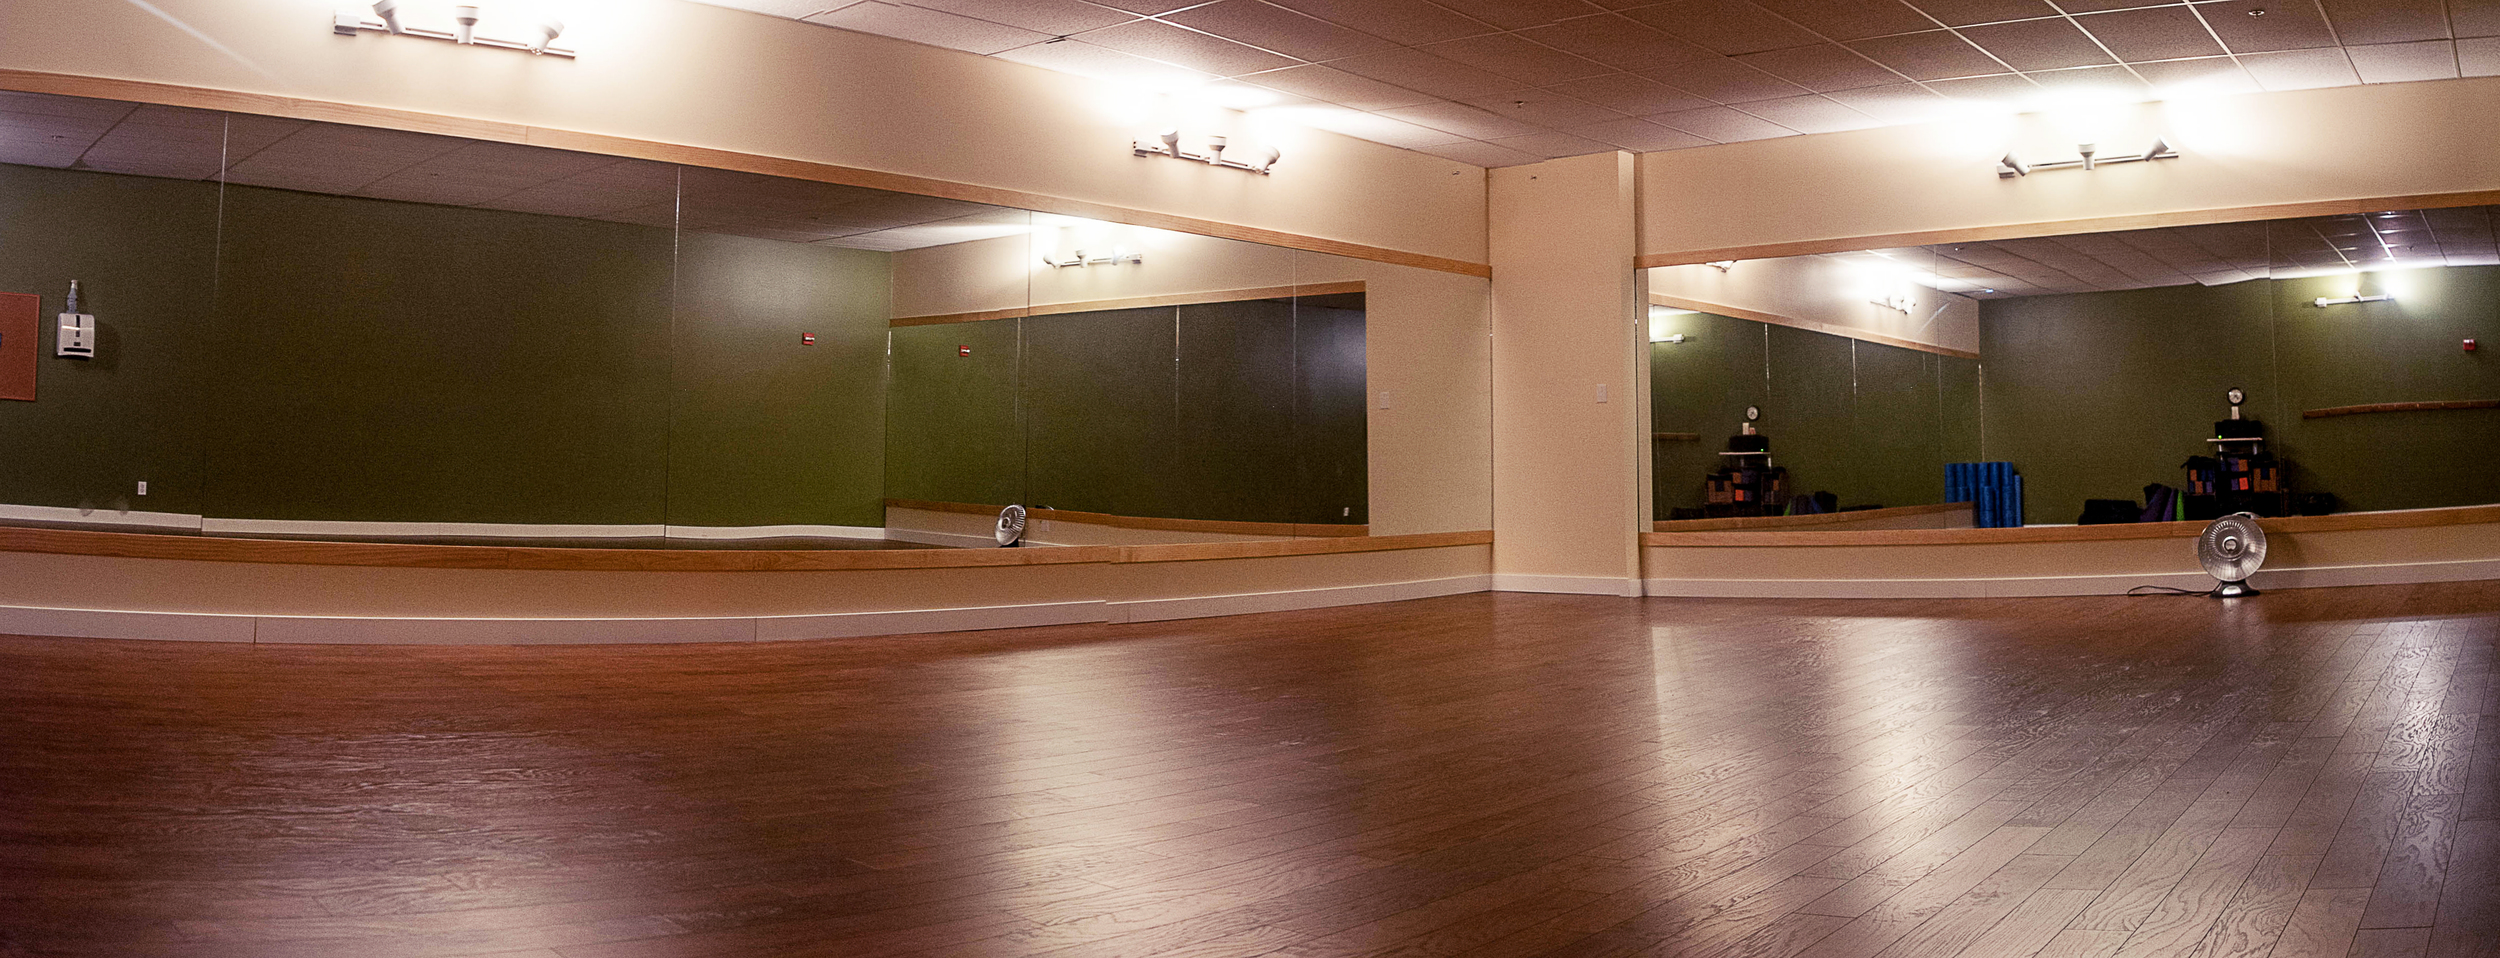 Mind Body Yoga Studio - Low Light for Optimal RelaxationHeatedNewly-Redone FlooringMirrored Walls for Open Feel